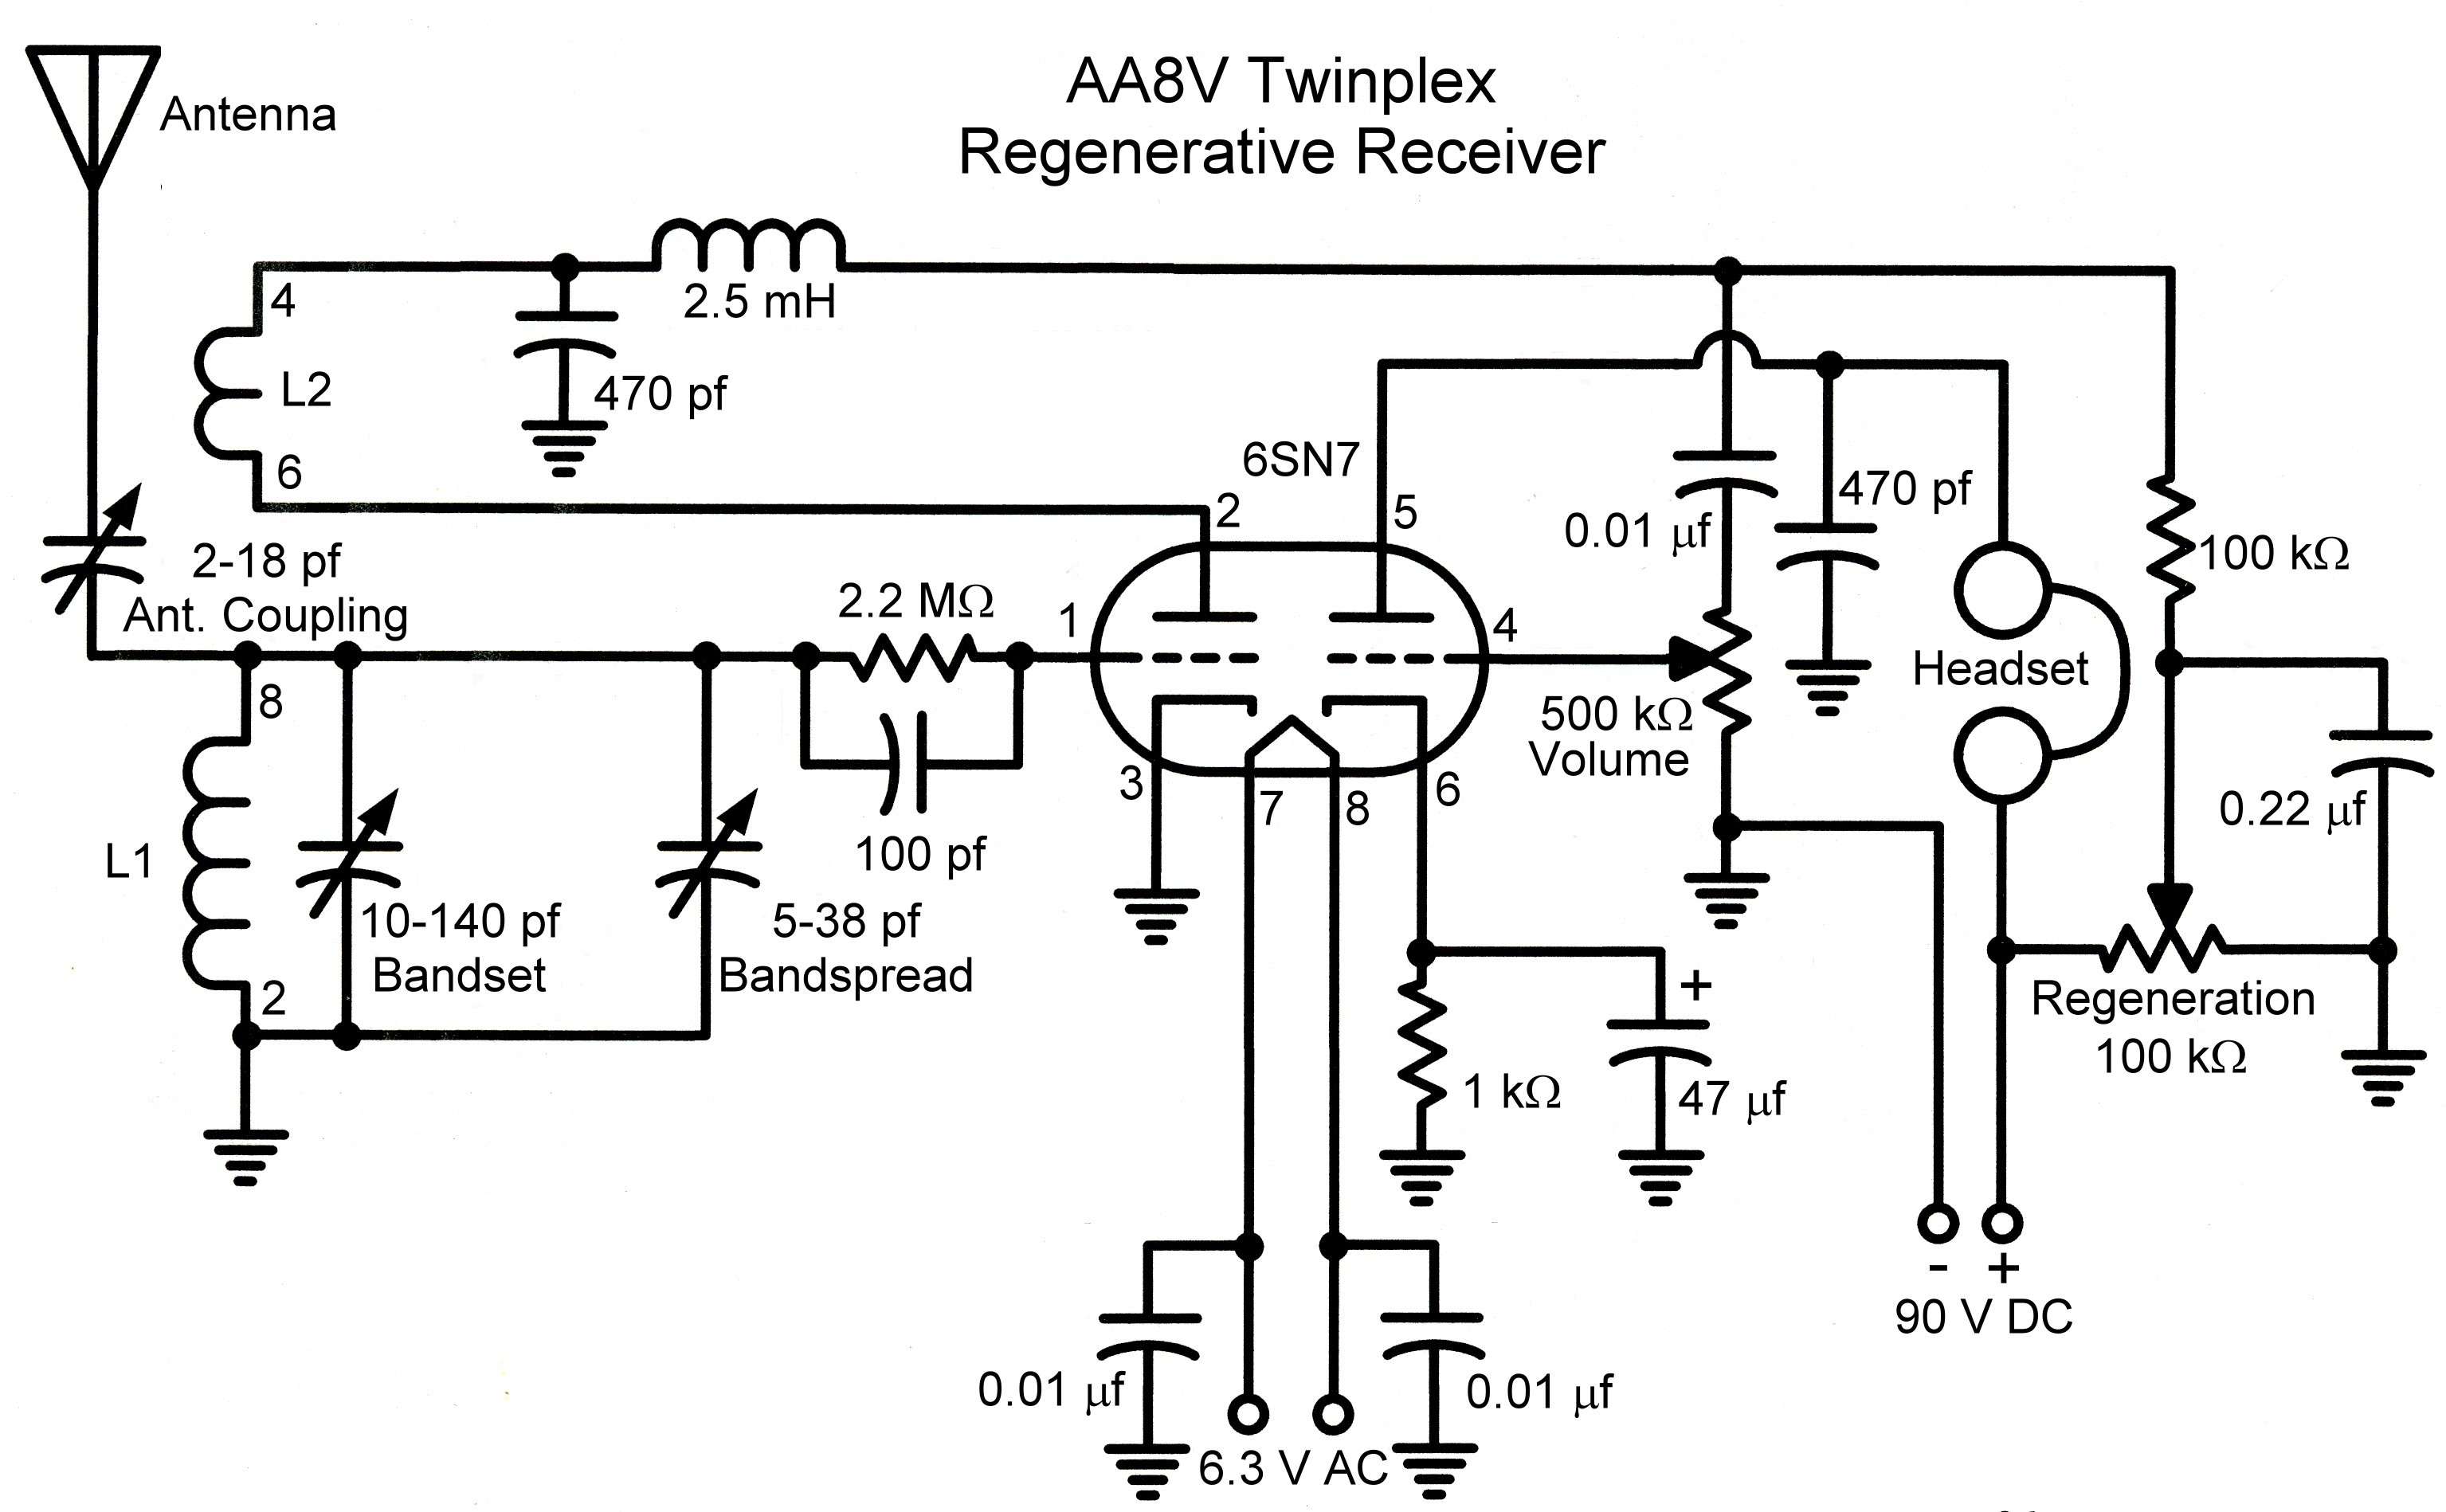 twinplex schematic full resolution the aa8v twinplex regenerative receiver schematic diagrams and schematic circuit diagram at mifinder.co